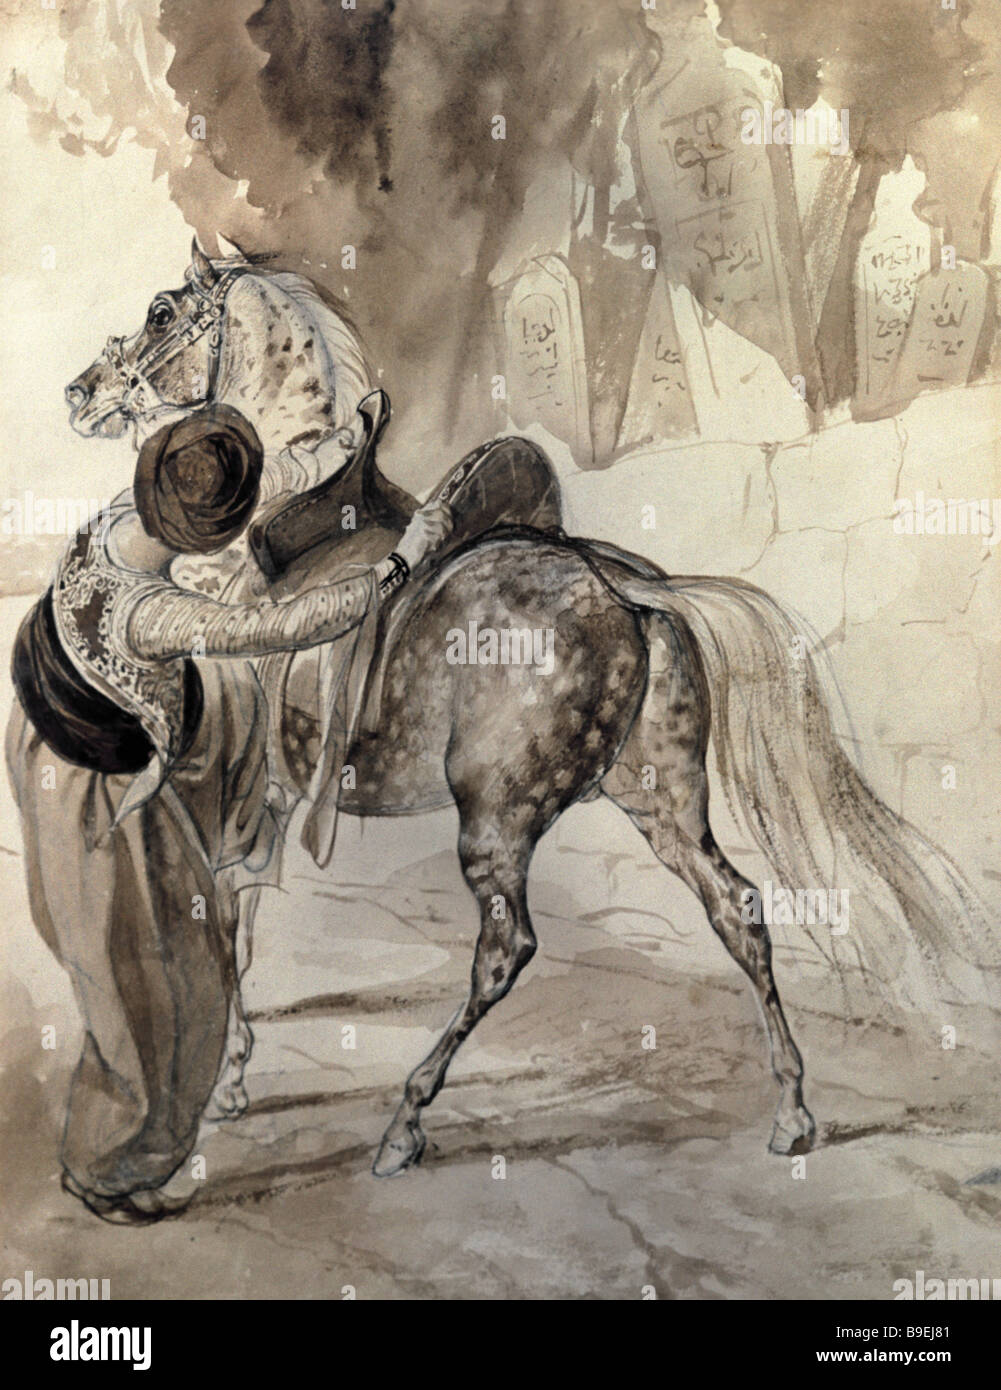 Reproduction of the sepia drawing The Mounting Turk 1835 by Karl Bryullov from the Tretyakov State Gallery collection - Stock Image